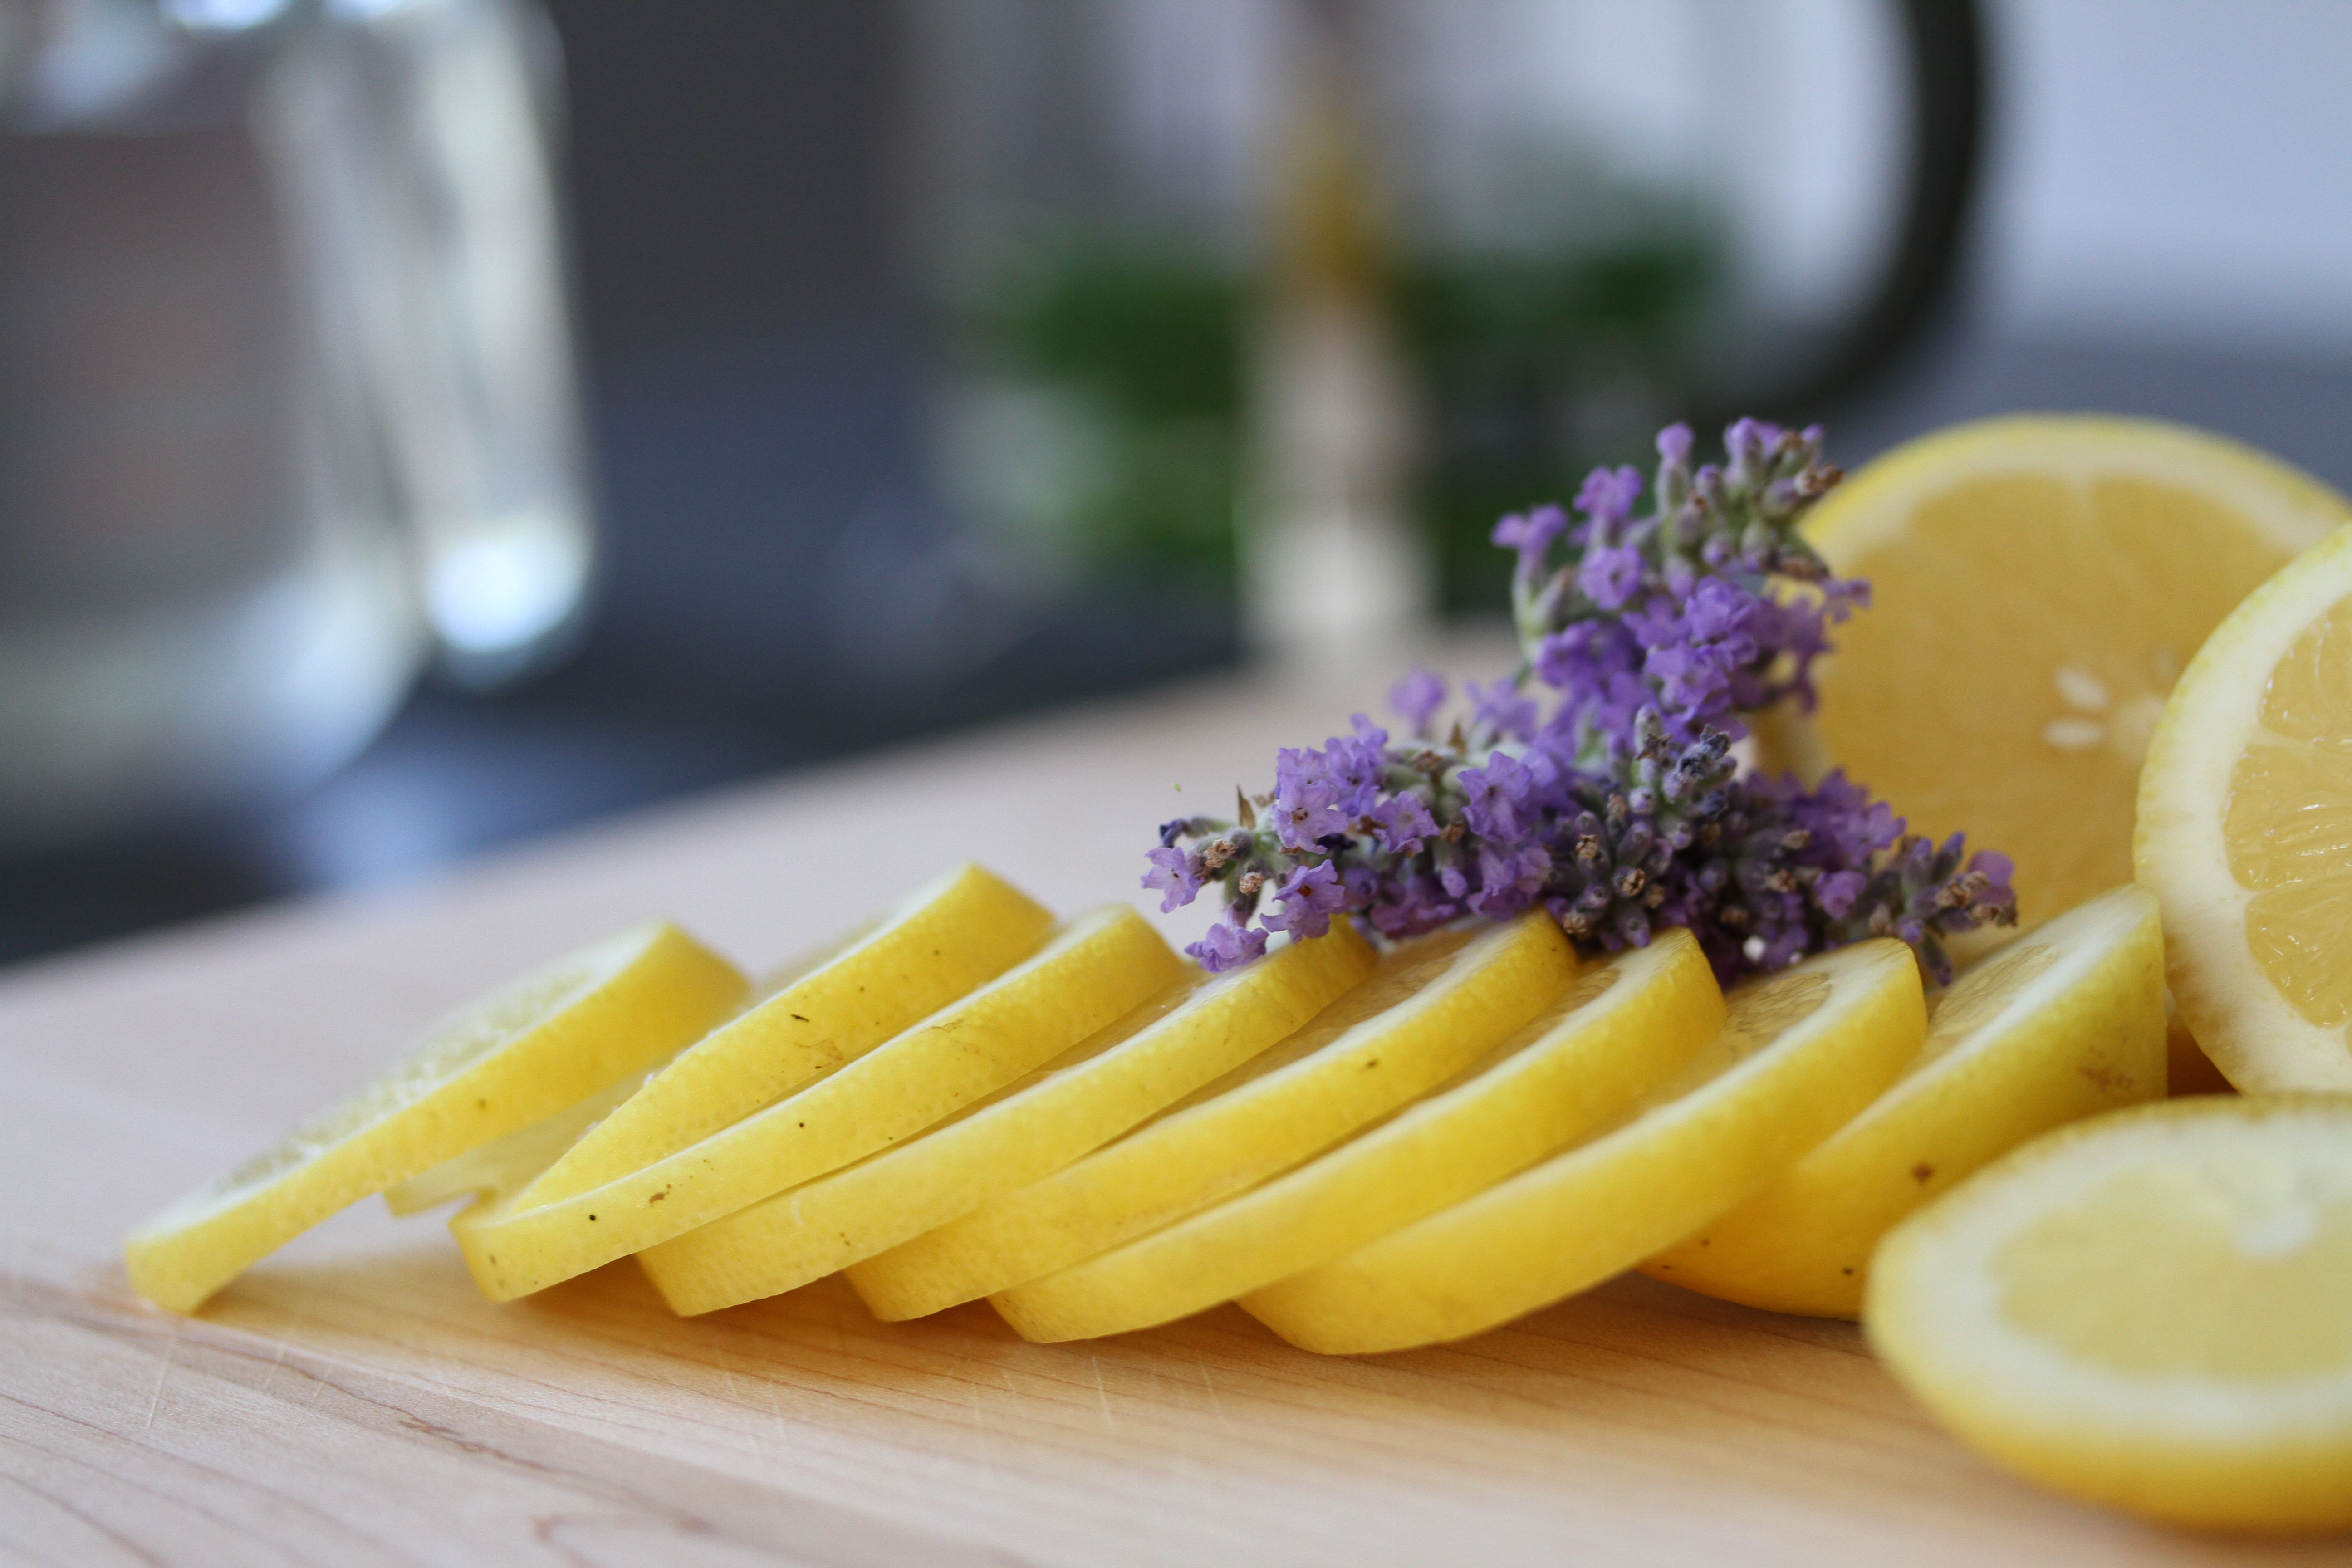 Some garnishes, using lavender blossoms from the yard. Lovely.